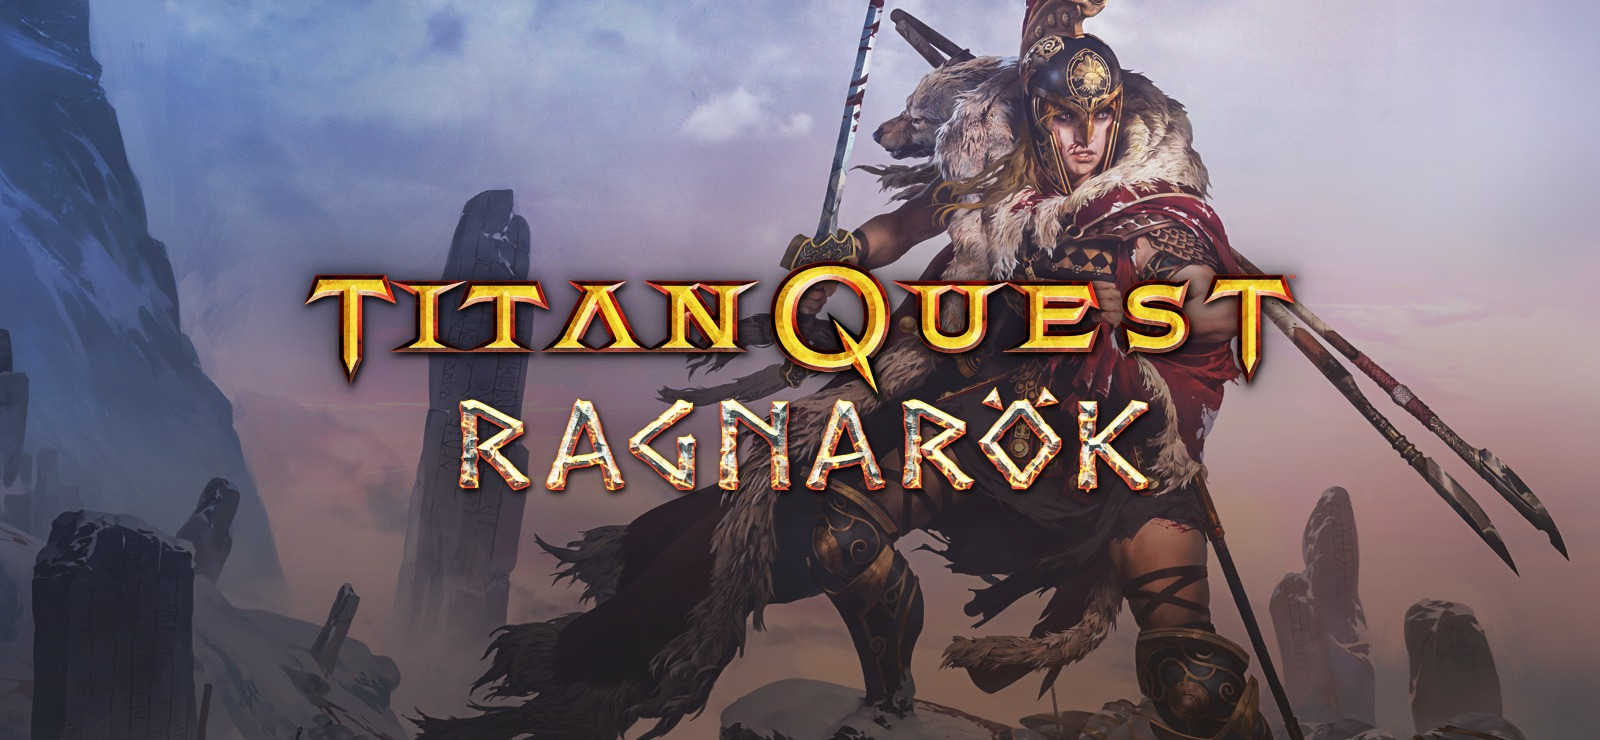 Titan Quest Ragnarök Review - All In The Name of Odin